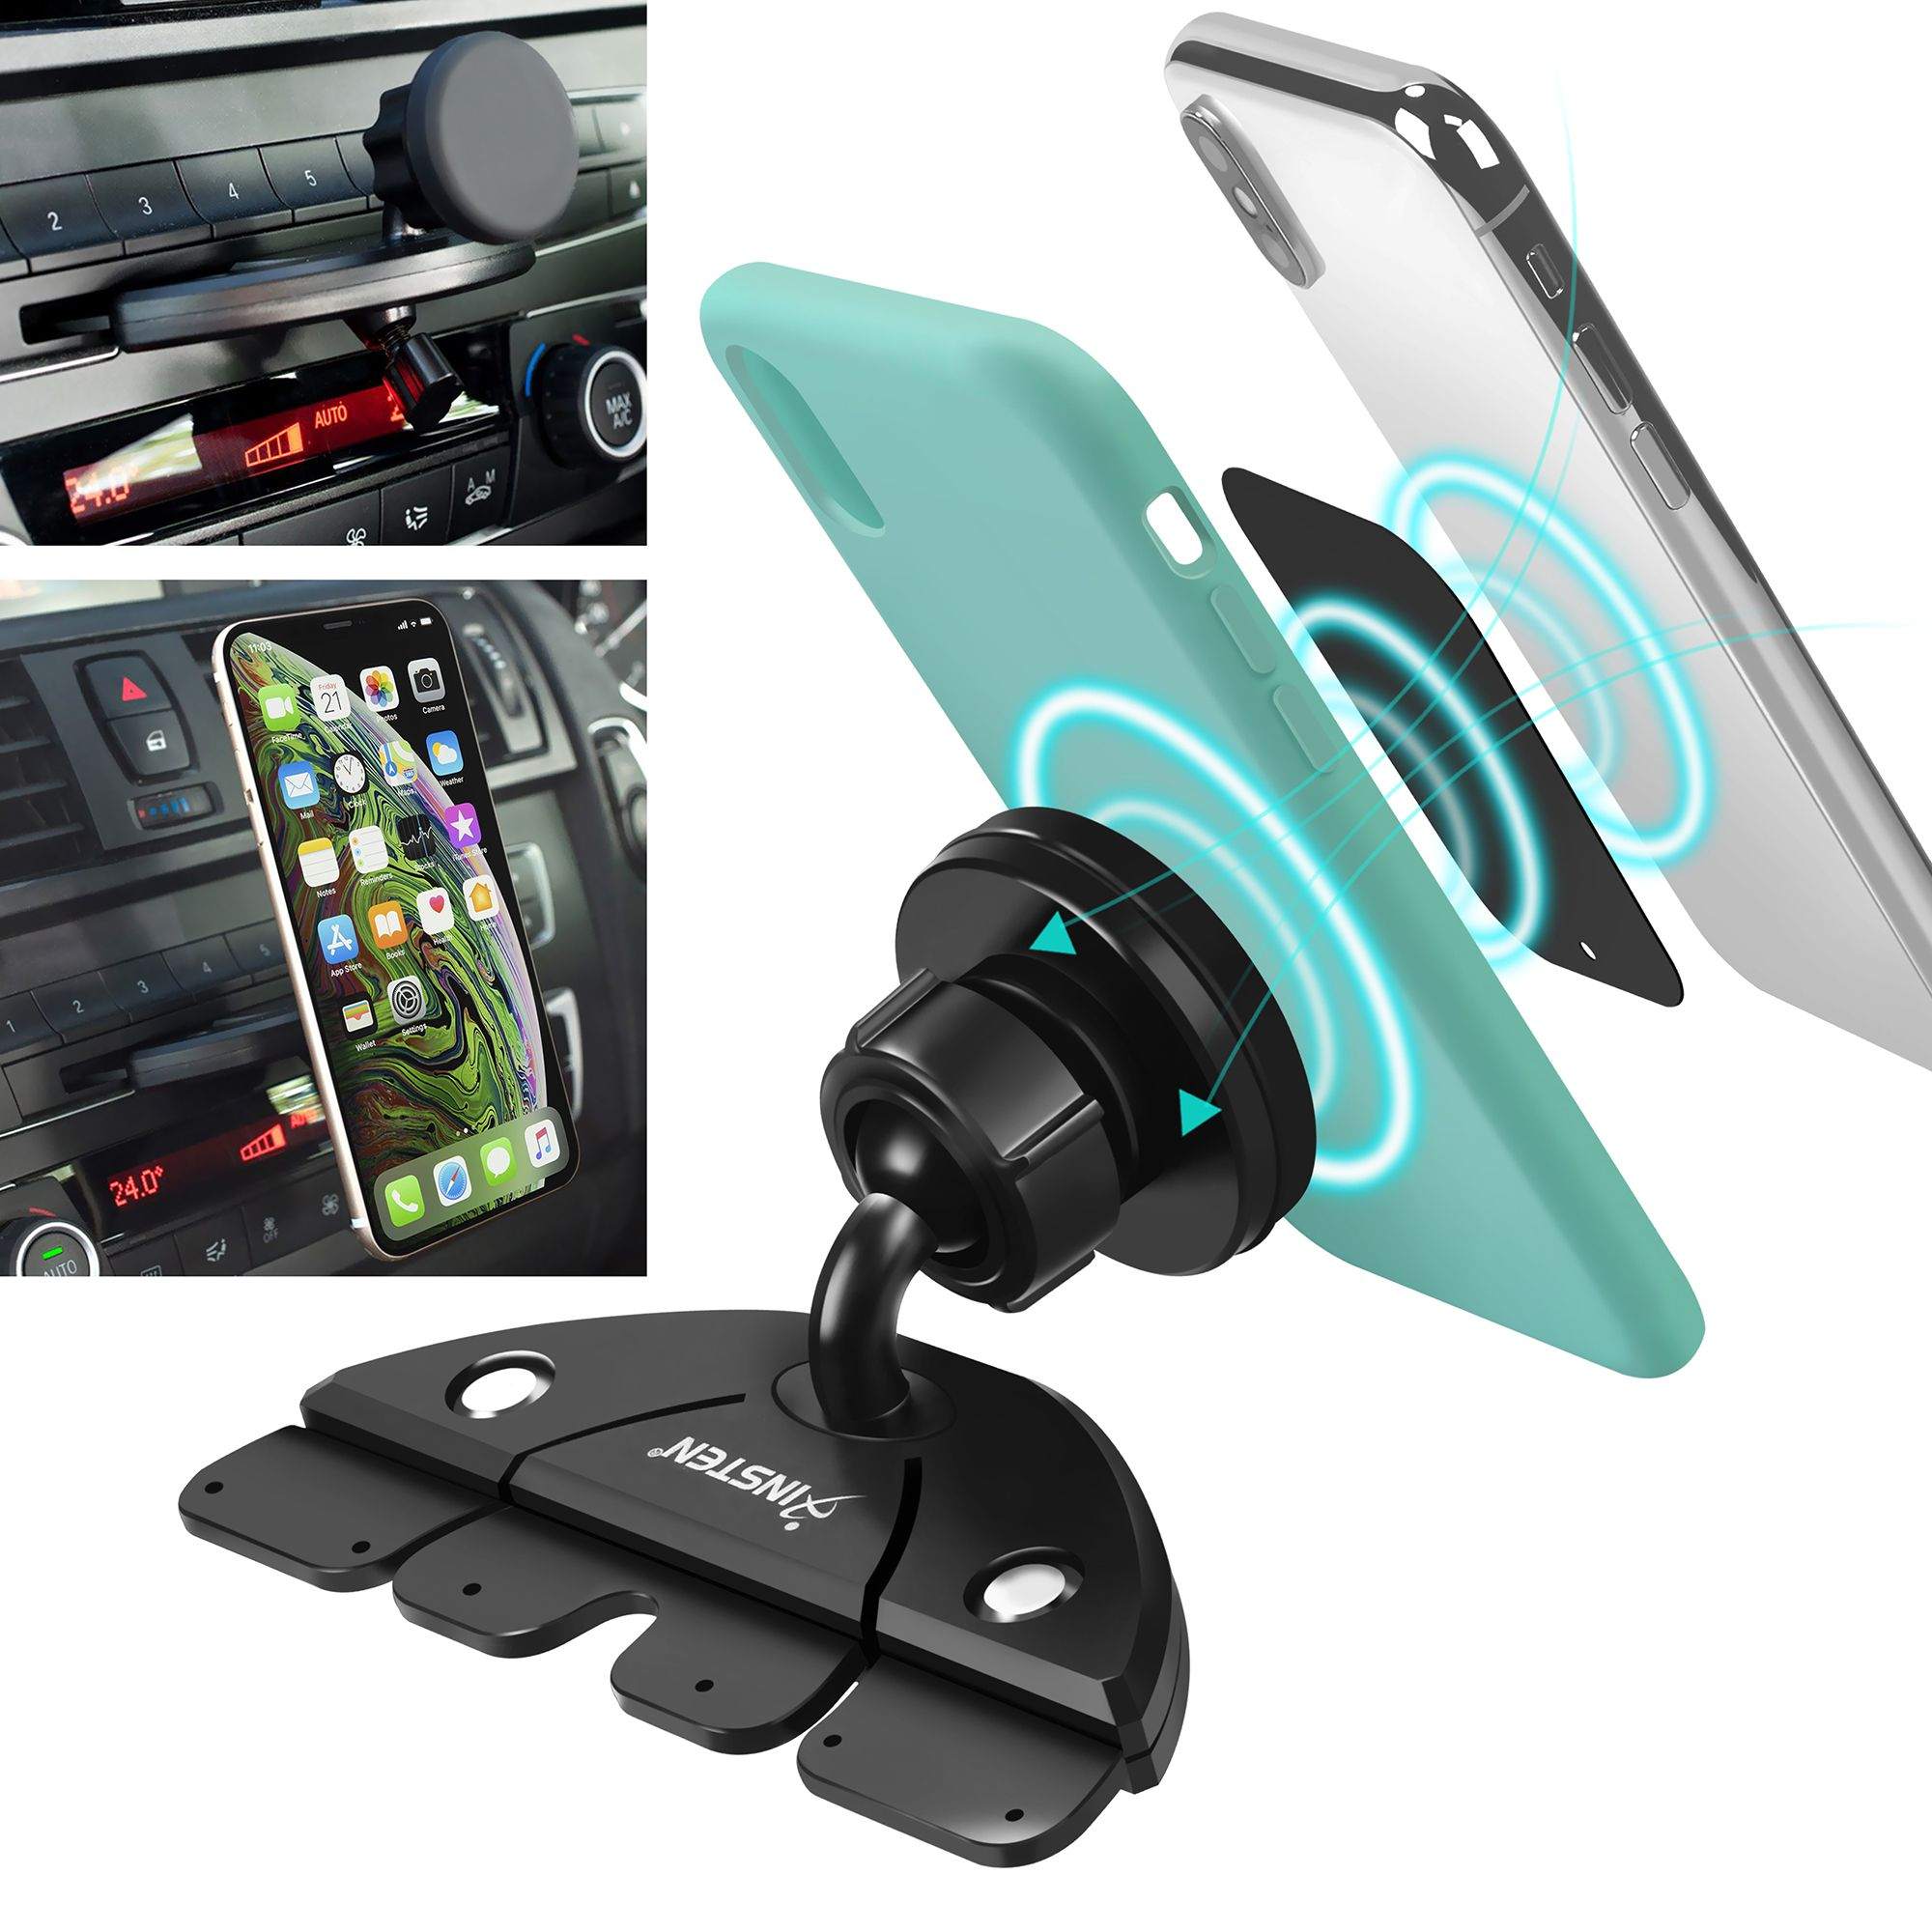 Magnetic Cell Phone Mount >> Insten Cd Slot Magnetic Cell Phone Car Mount Holder For Iphone Xs Max Xs Xr X 8 7 6 6s Android Smartphone Lg Samsung Galaxy S10 S10e S9 S9 S8 S7